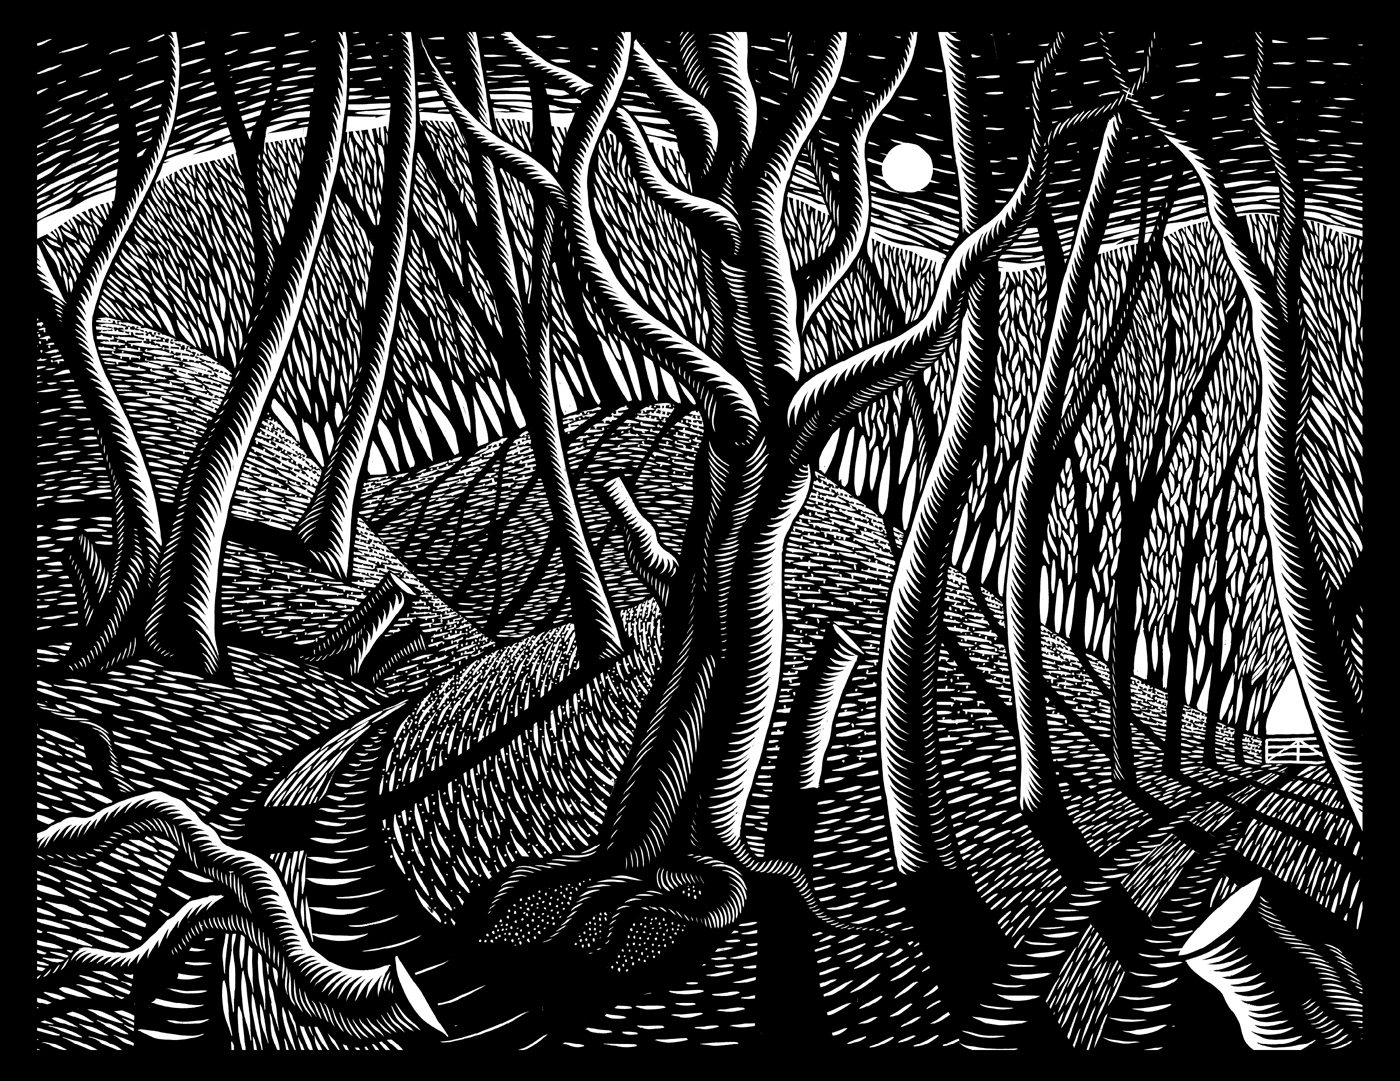 Illustration from Nick Hayes: The Book of Trespass